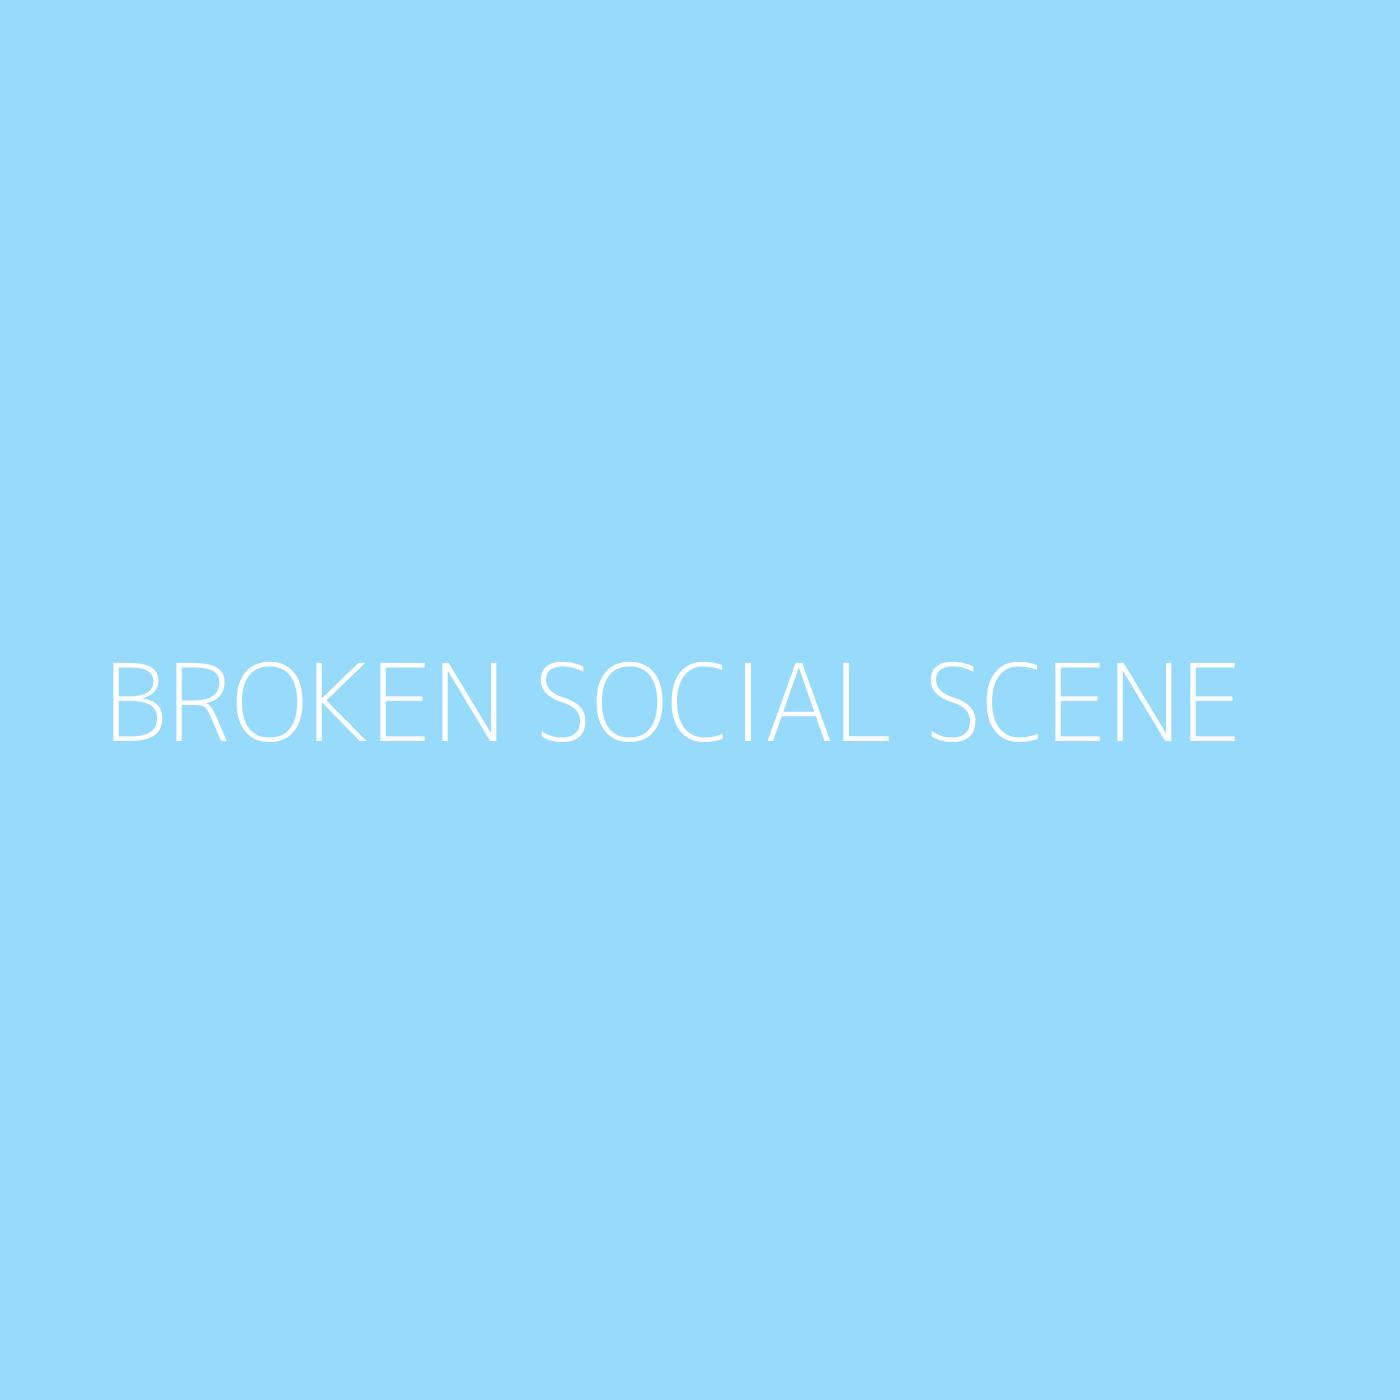 Broken Social Scene Playlist Artwork